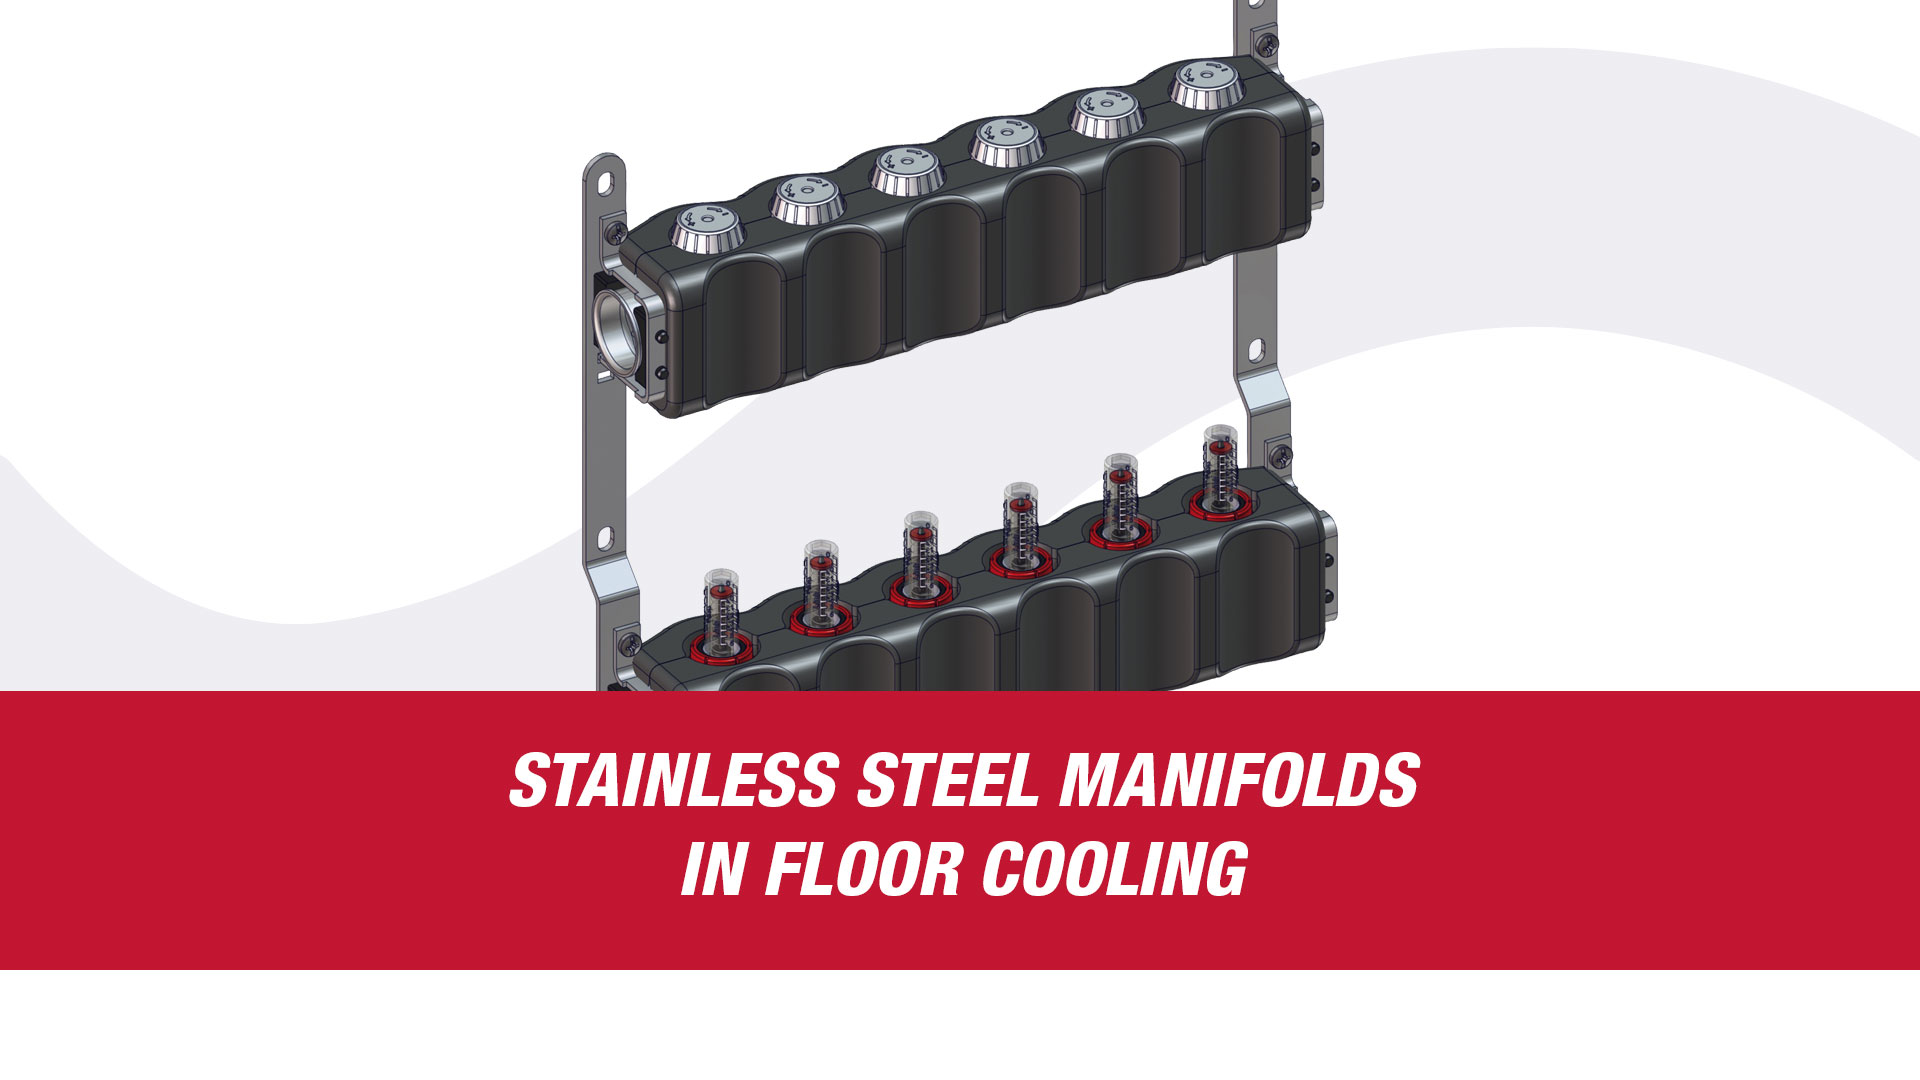 STAINLESS STEEL MANIFOLDS IN FLOOR COOLING